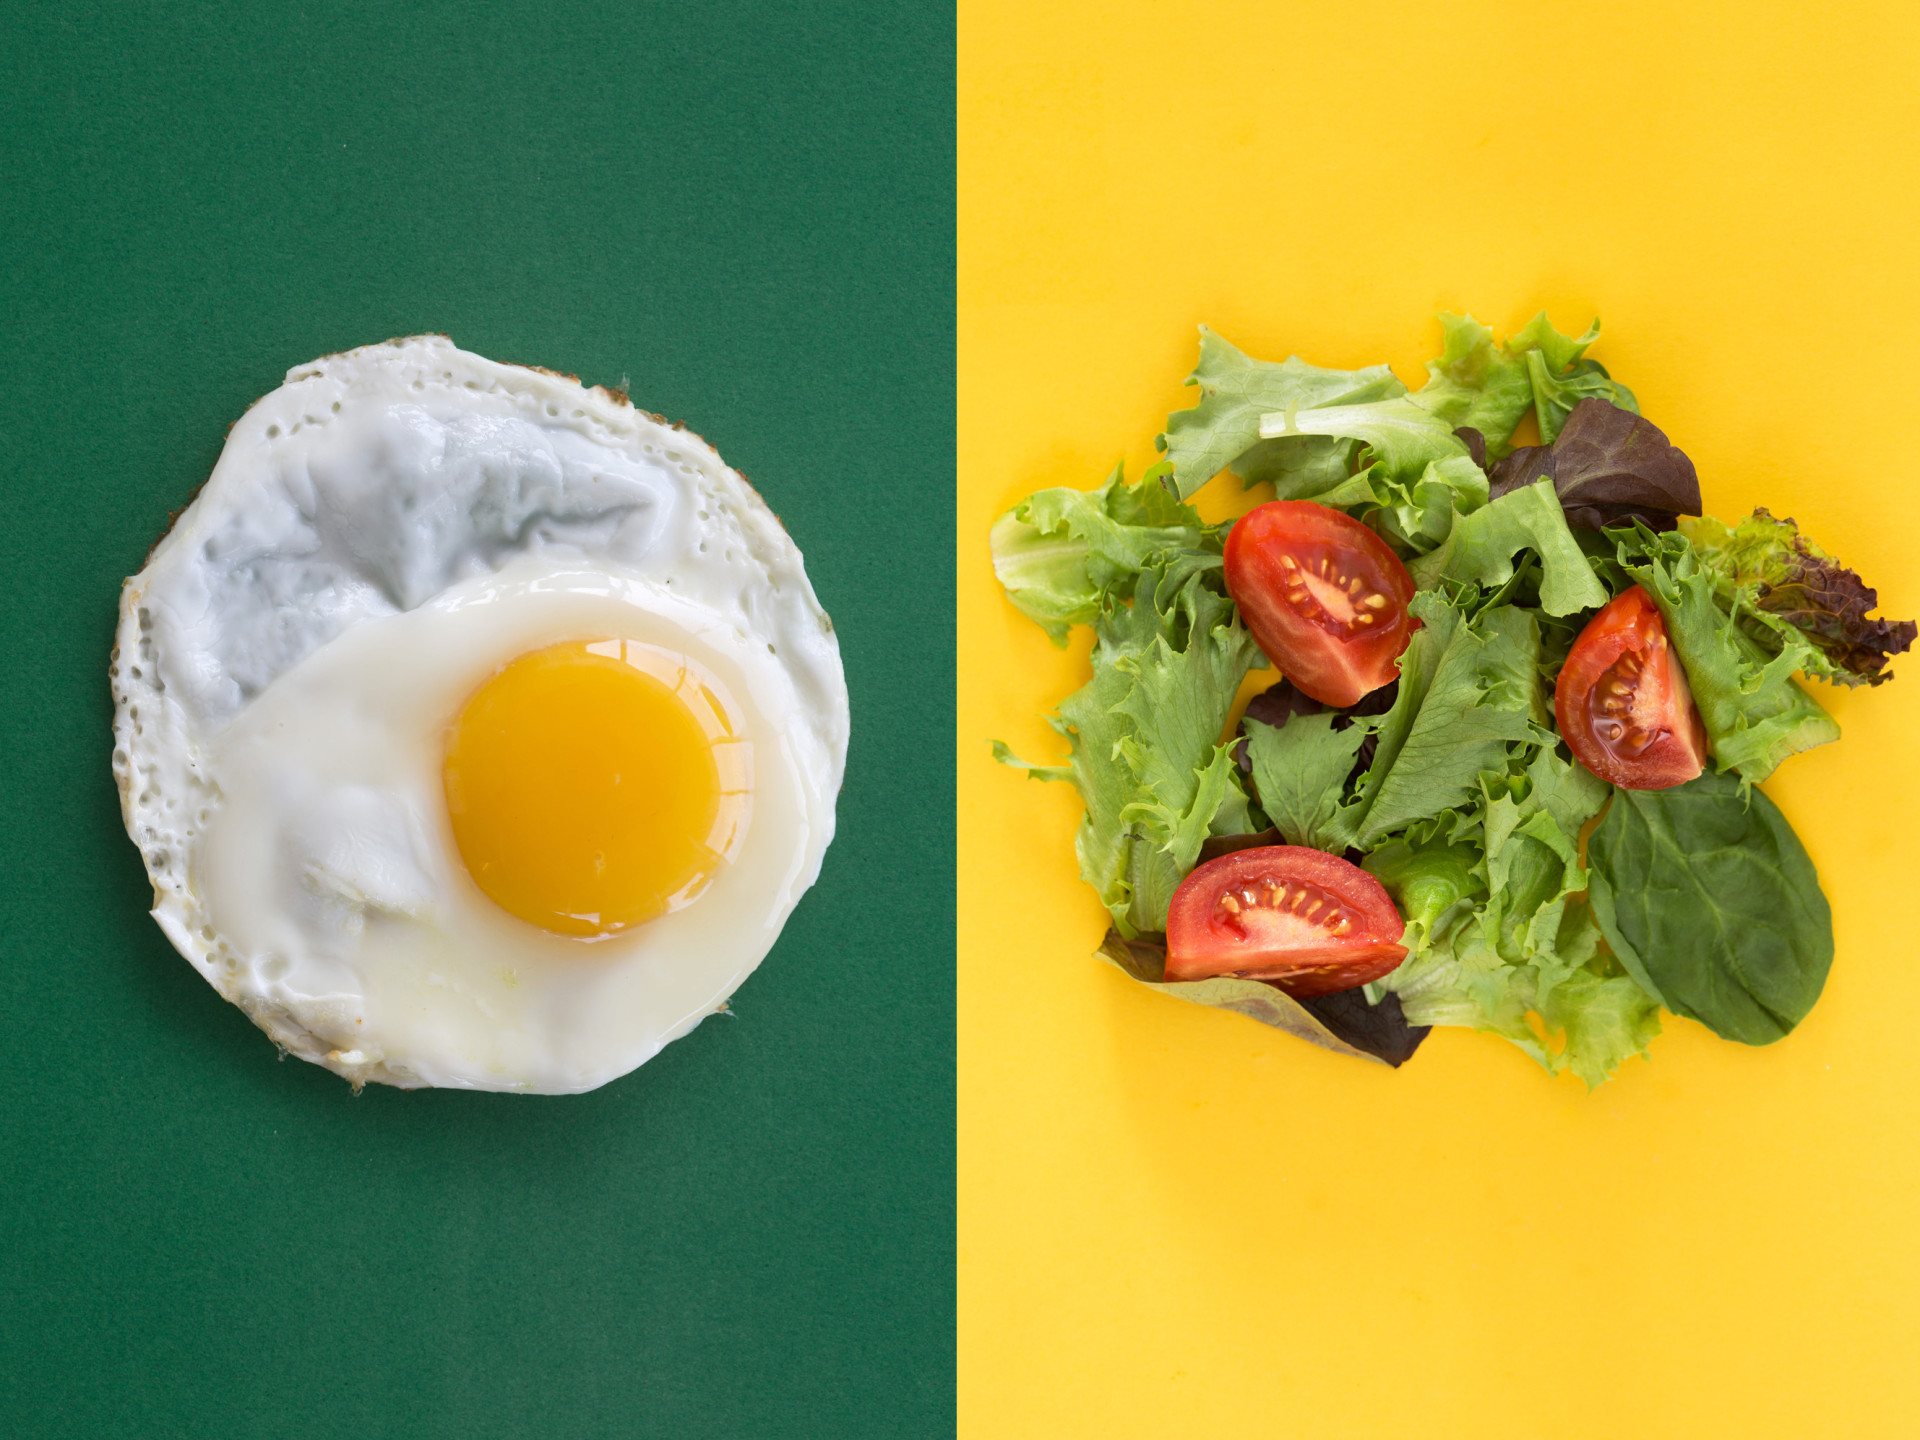 Eating eggs with your salad helps boost absorption of carotenoids — the pigments in tomatoes and carrots